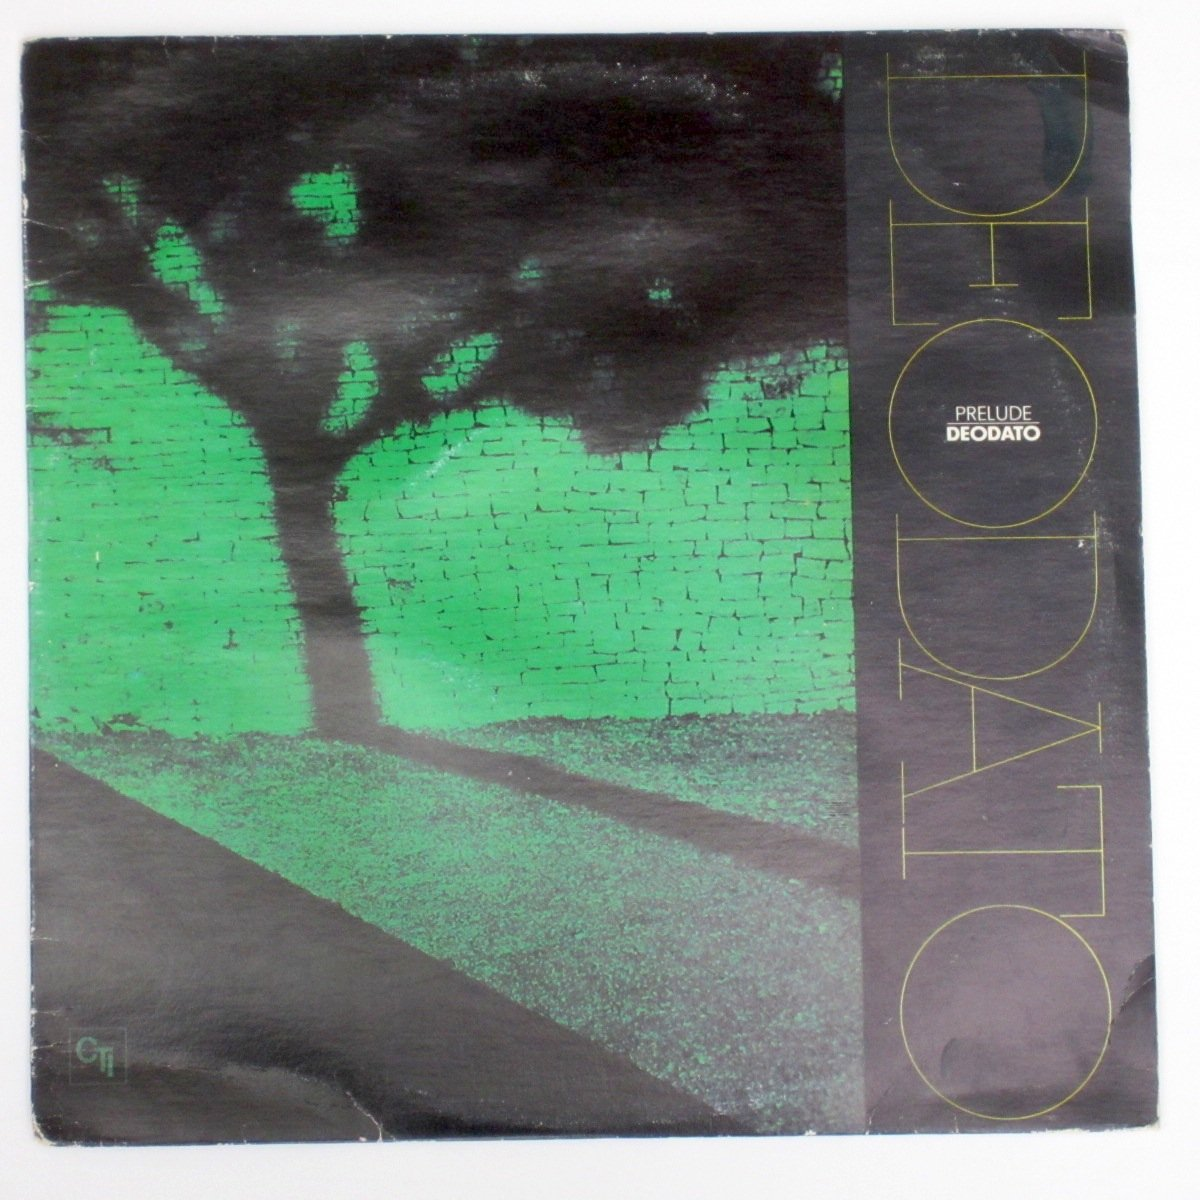 Nippon regular agency Prelude Deodato Recommended